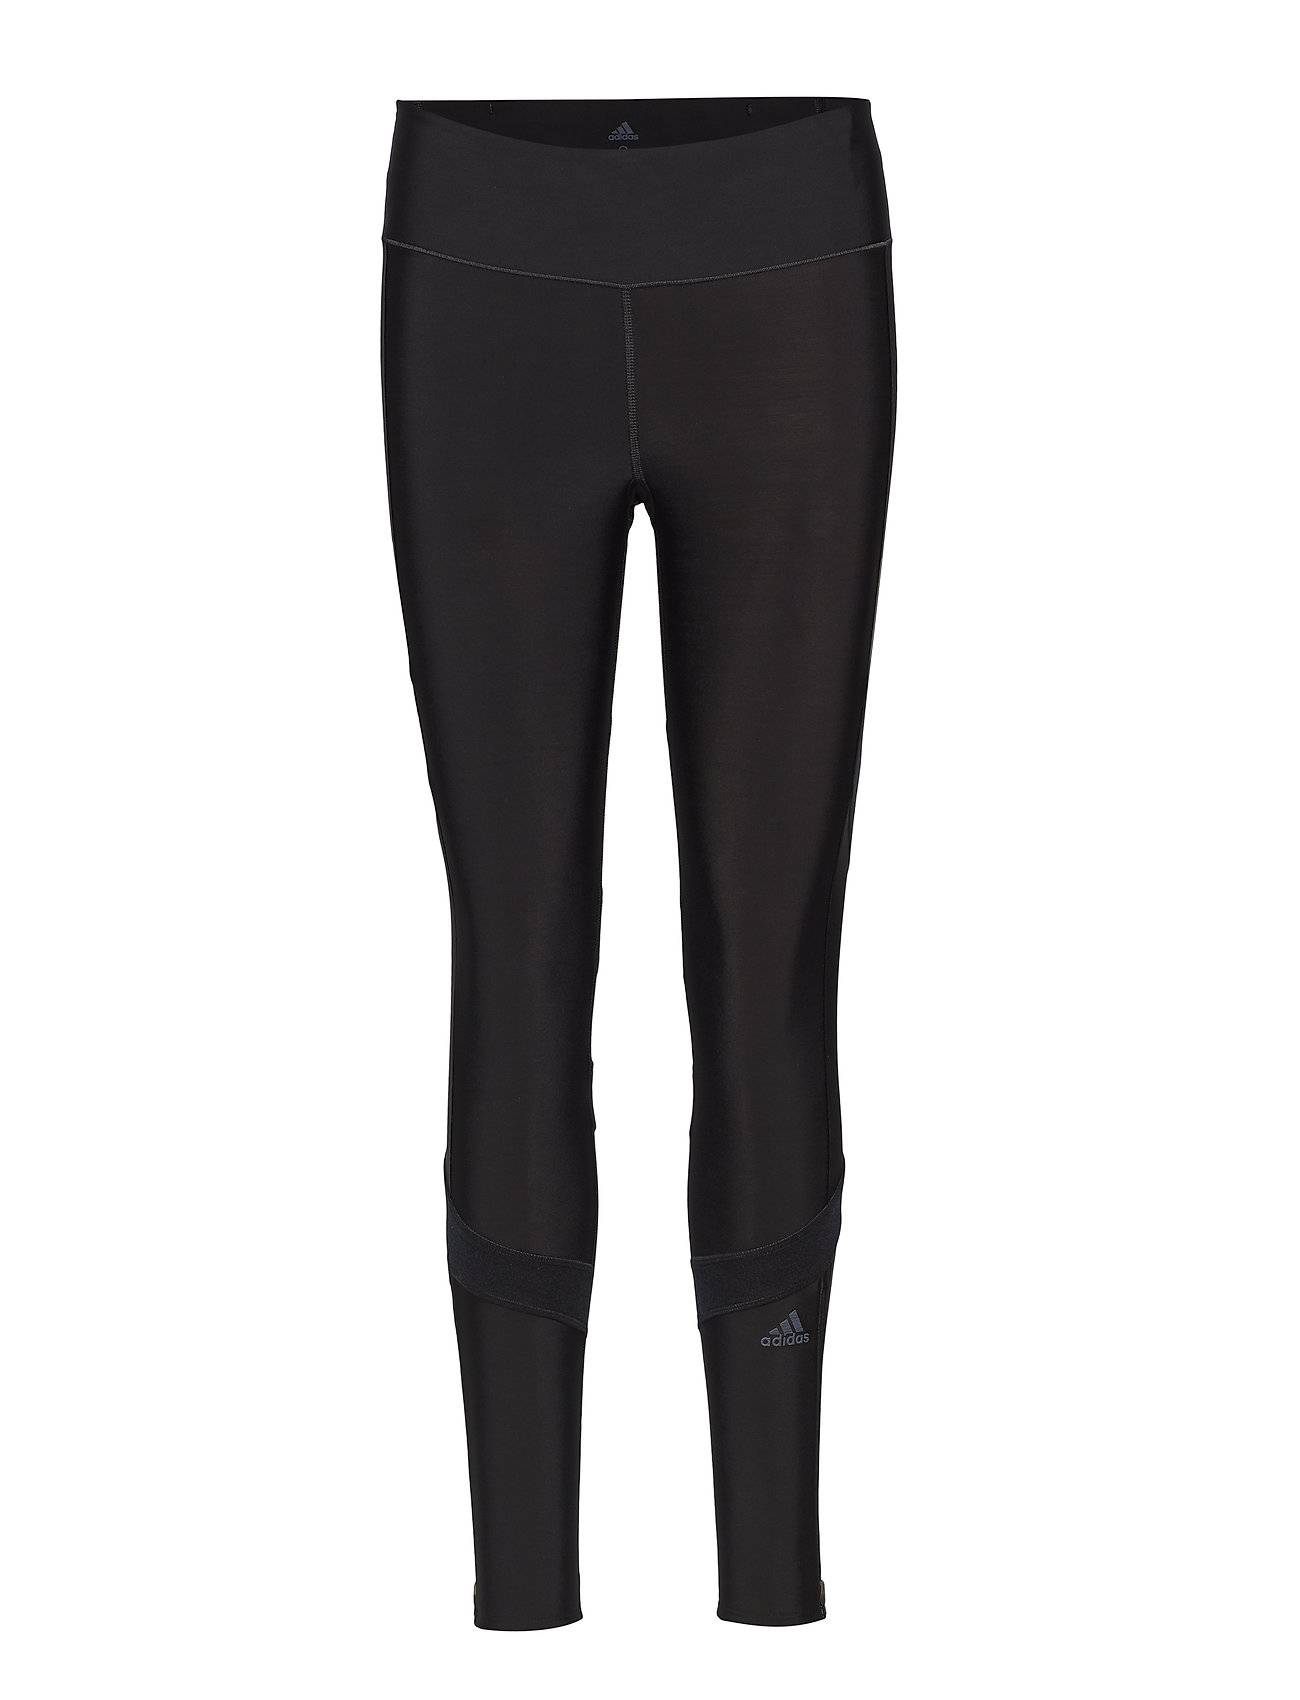 Image of adidas Performance How We Do Tight Running/training Tights Musta Adidas Performance